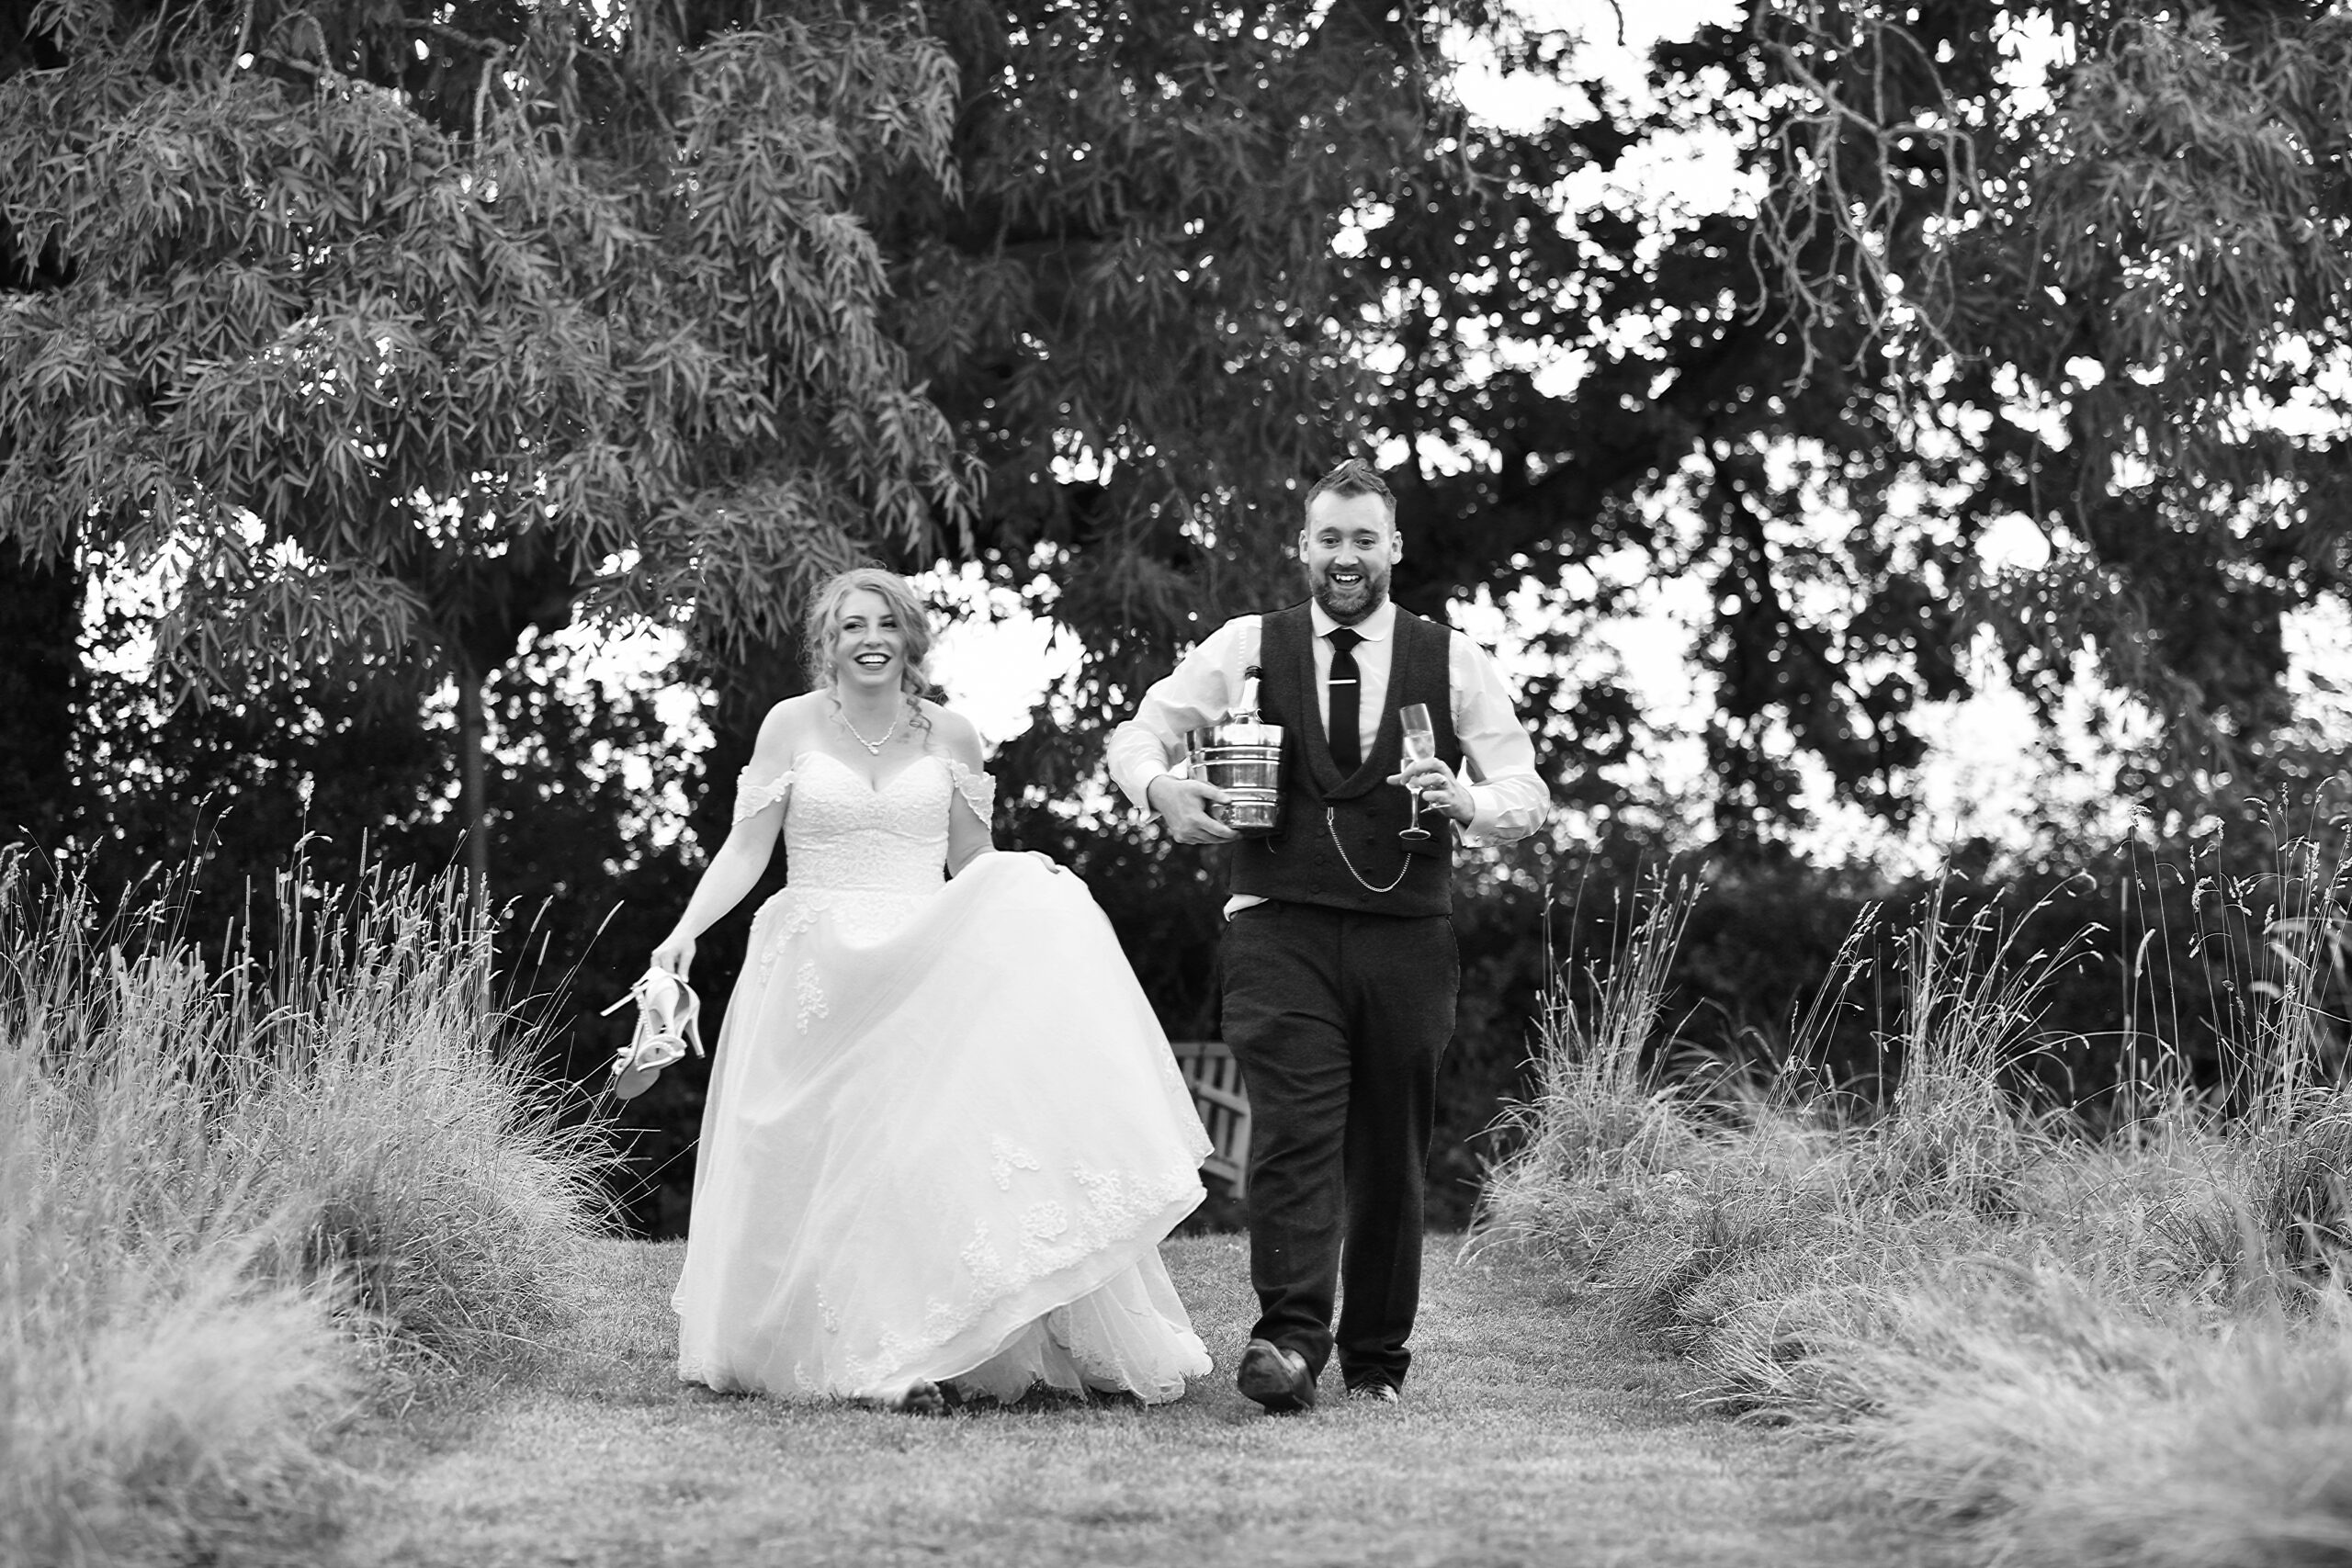 Black and White Wedding Photography at Wootton Park